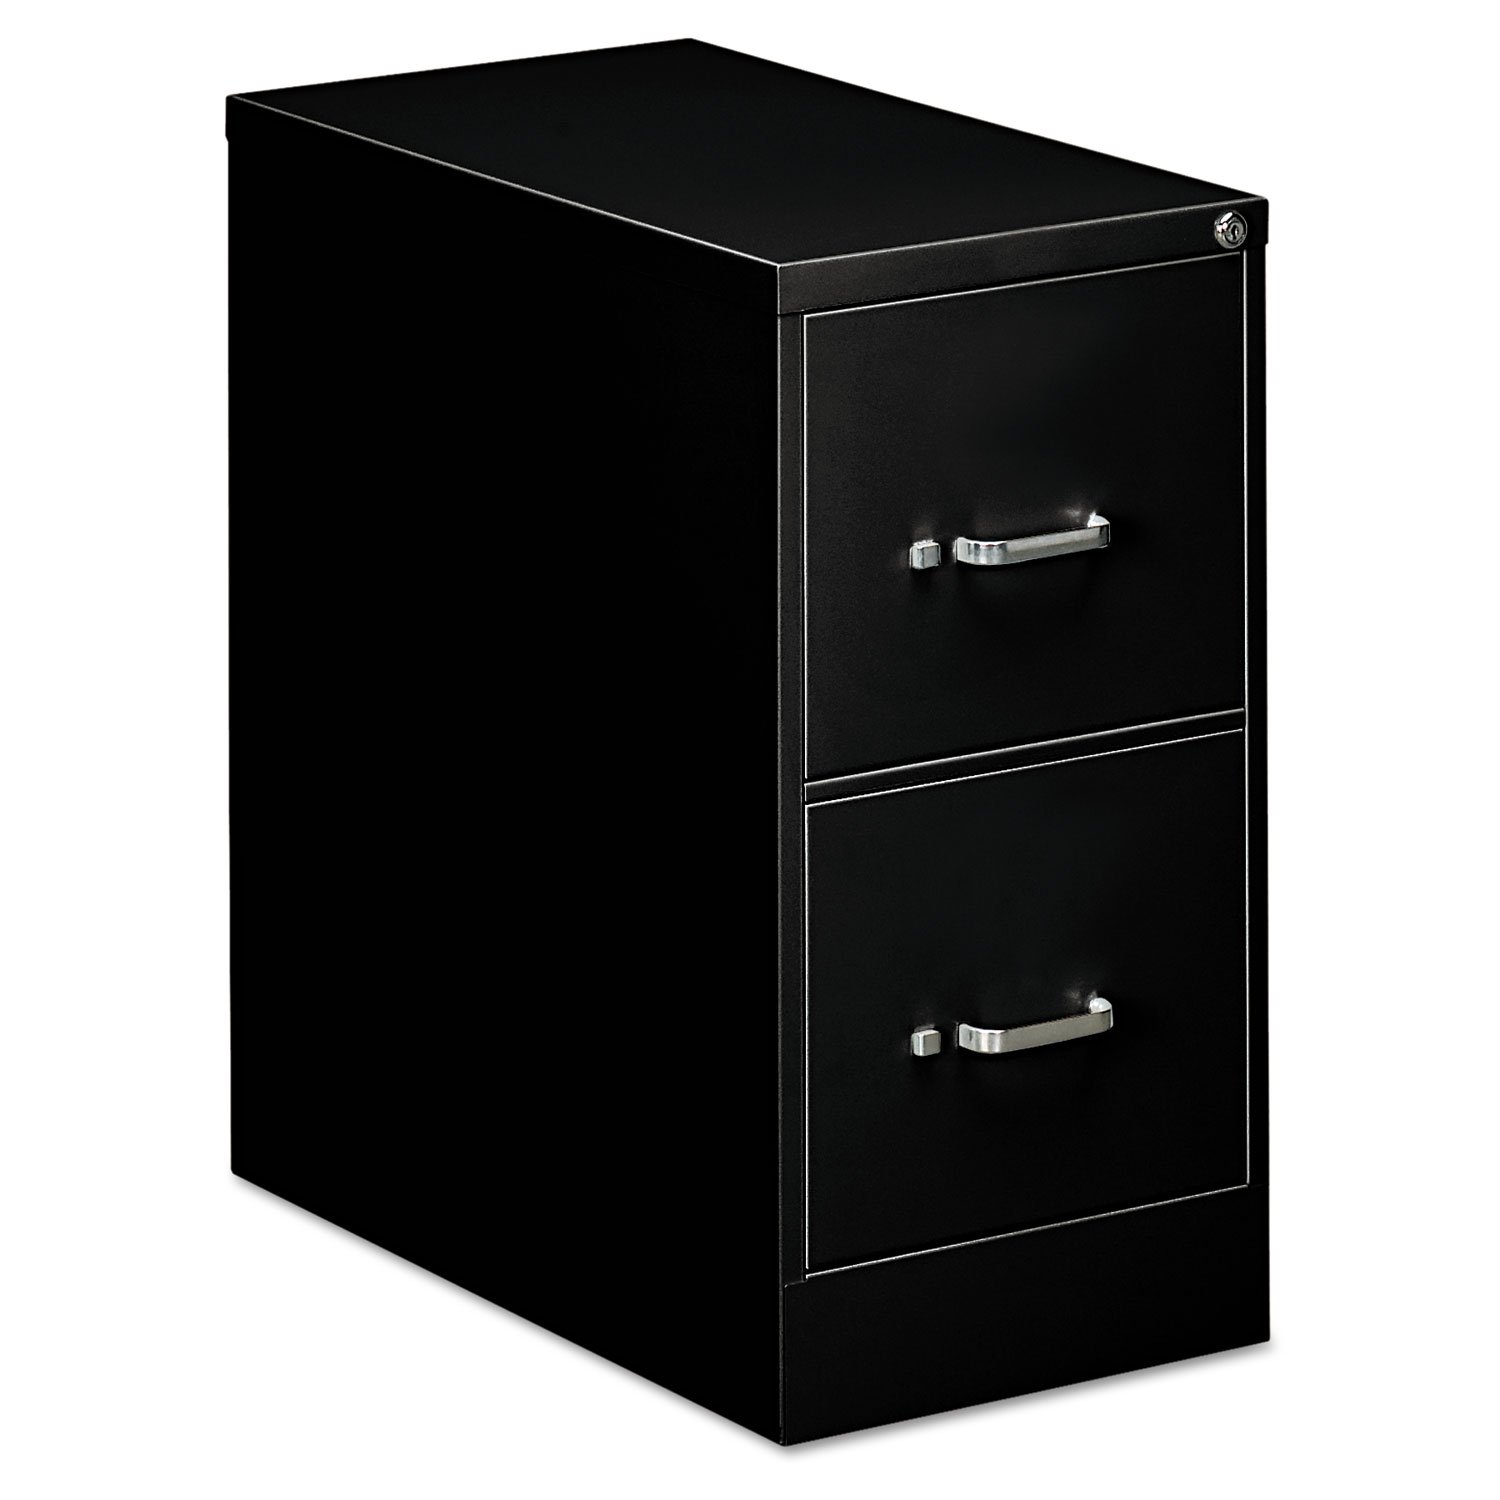 OIF Two Drawer Economy Vertical File Cabinet, 15-Inch Width by 26-1/2-Inch Depth by 29-Inch Height, Black by OIF